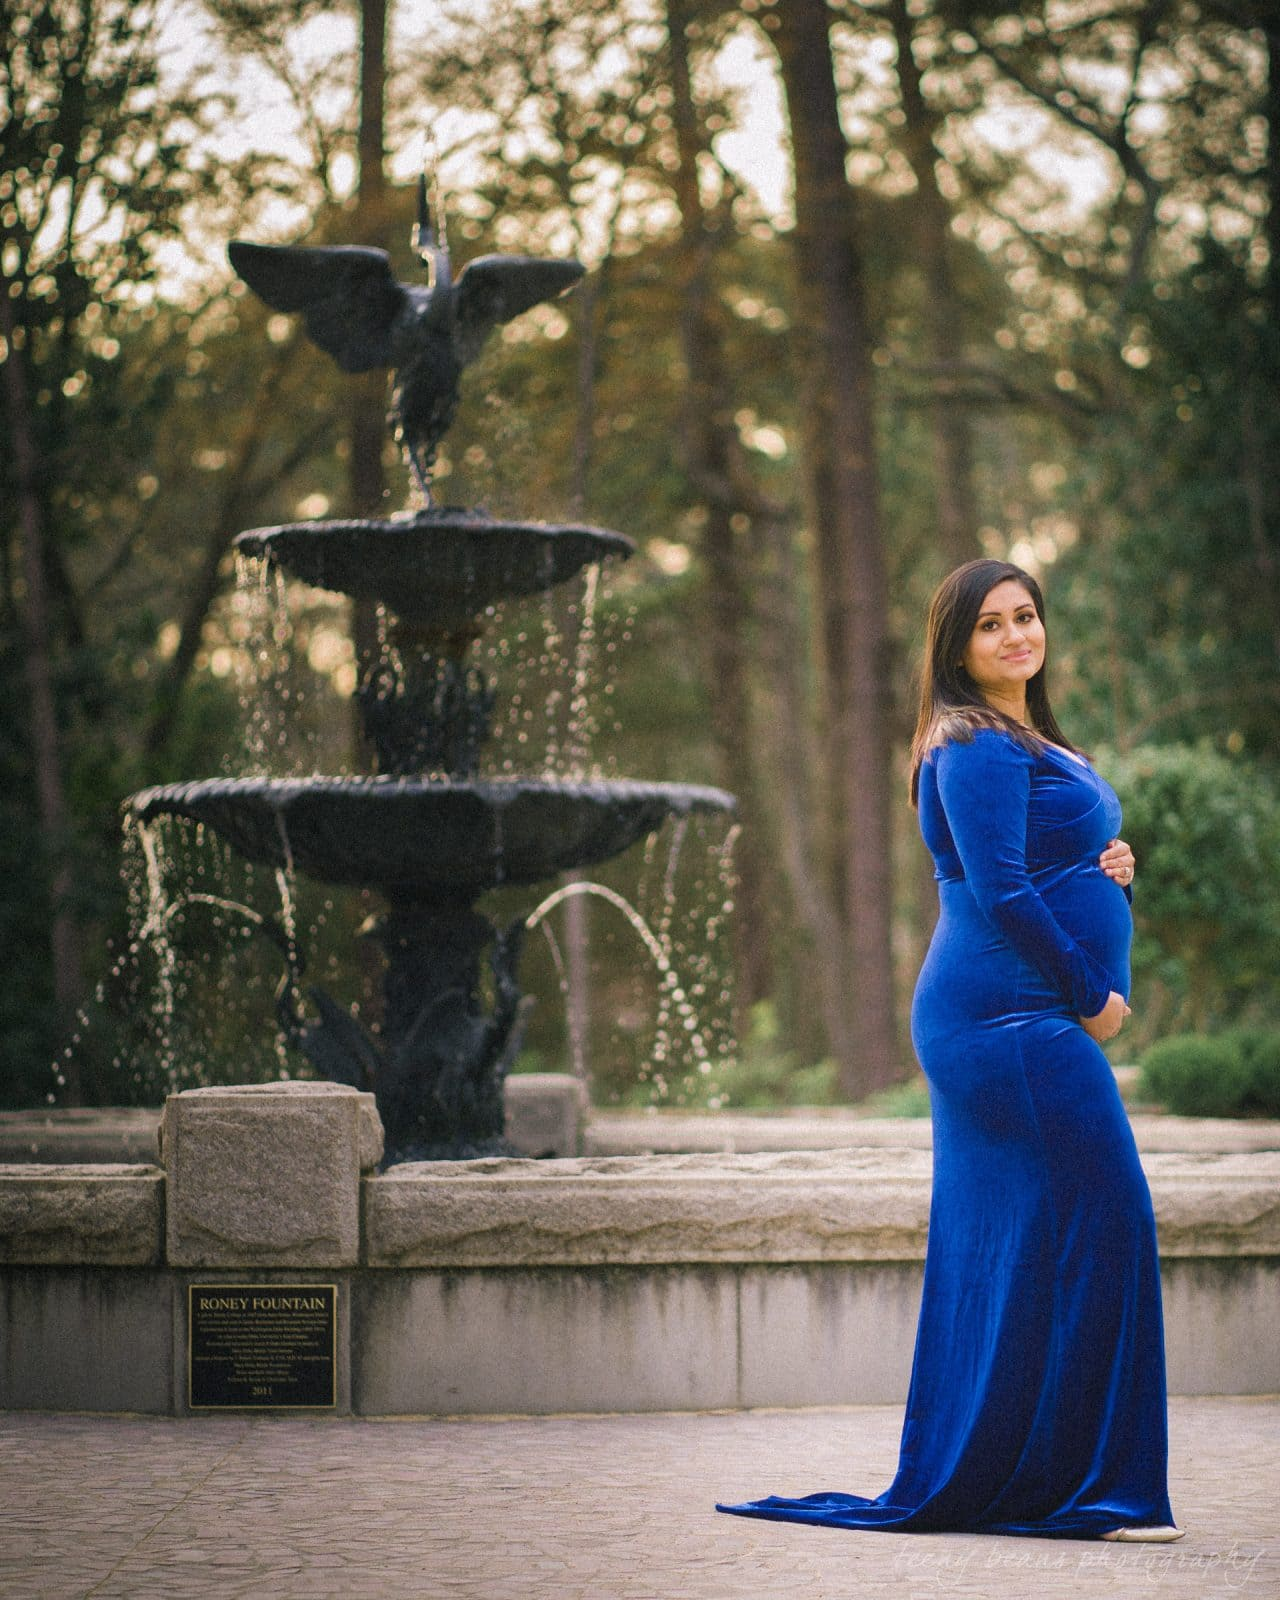 duke gardens maternity portrait photography yashika 10